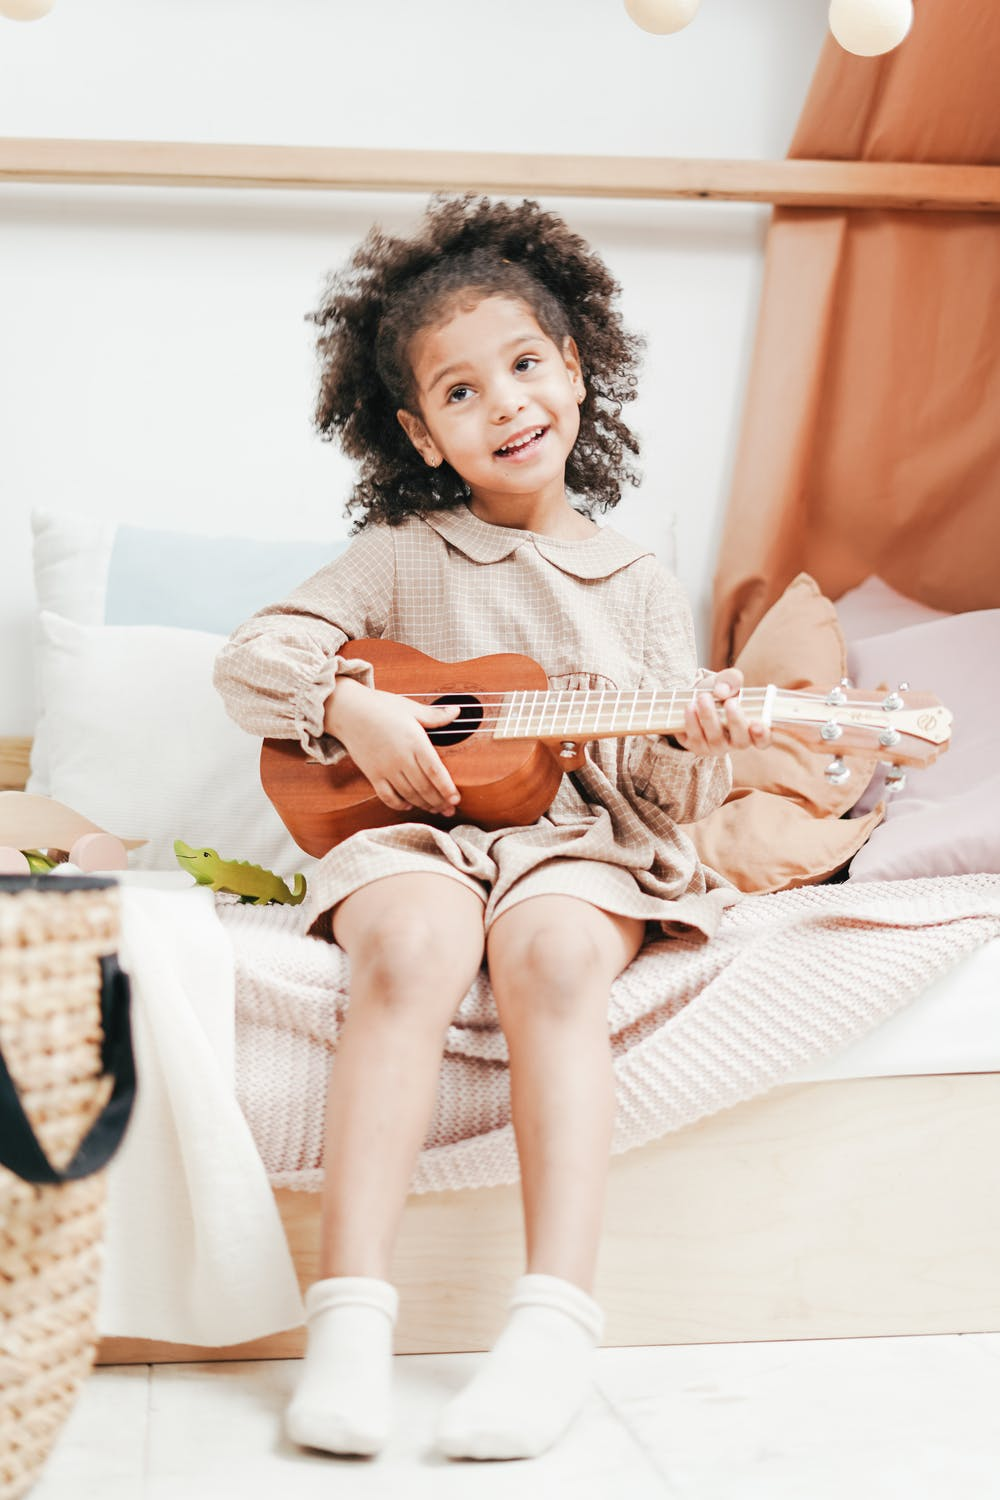 The Guitar is a Fun Instrument for Children to Learn